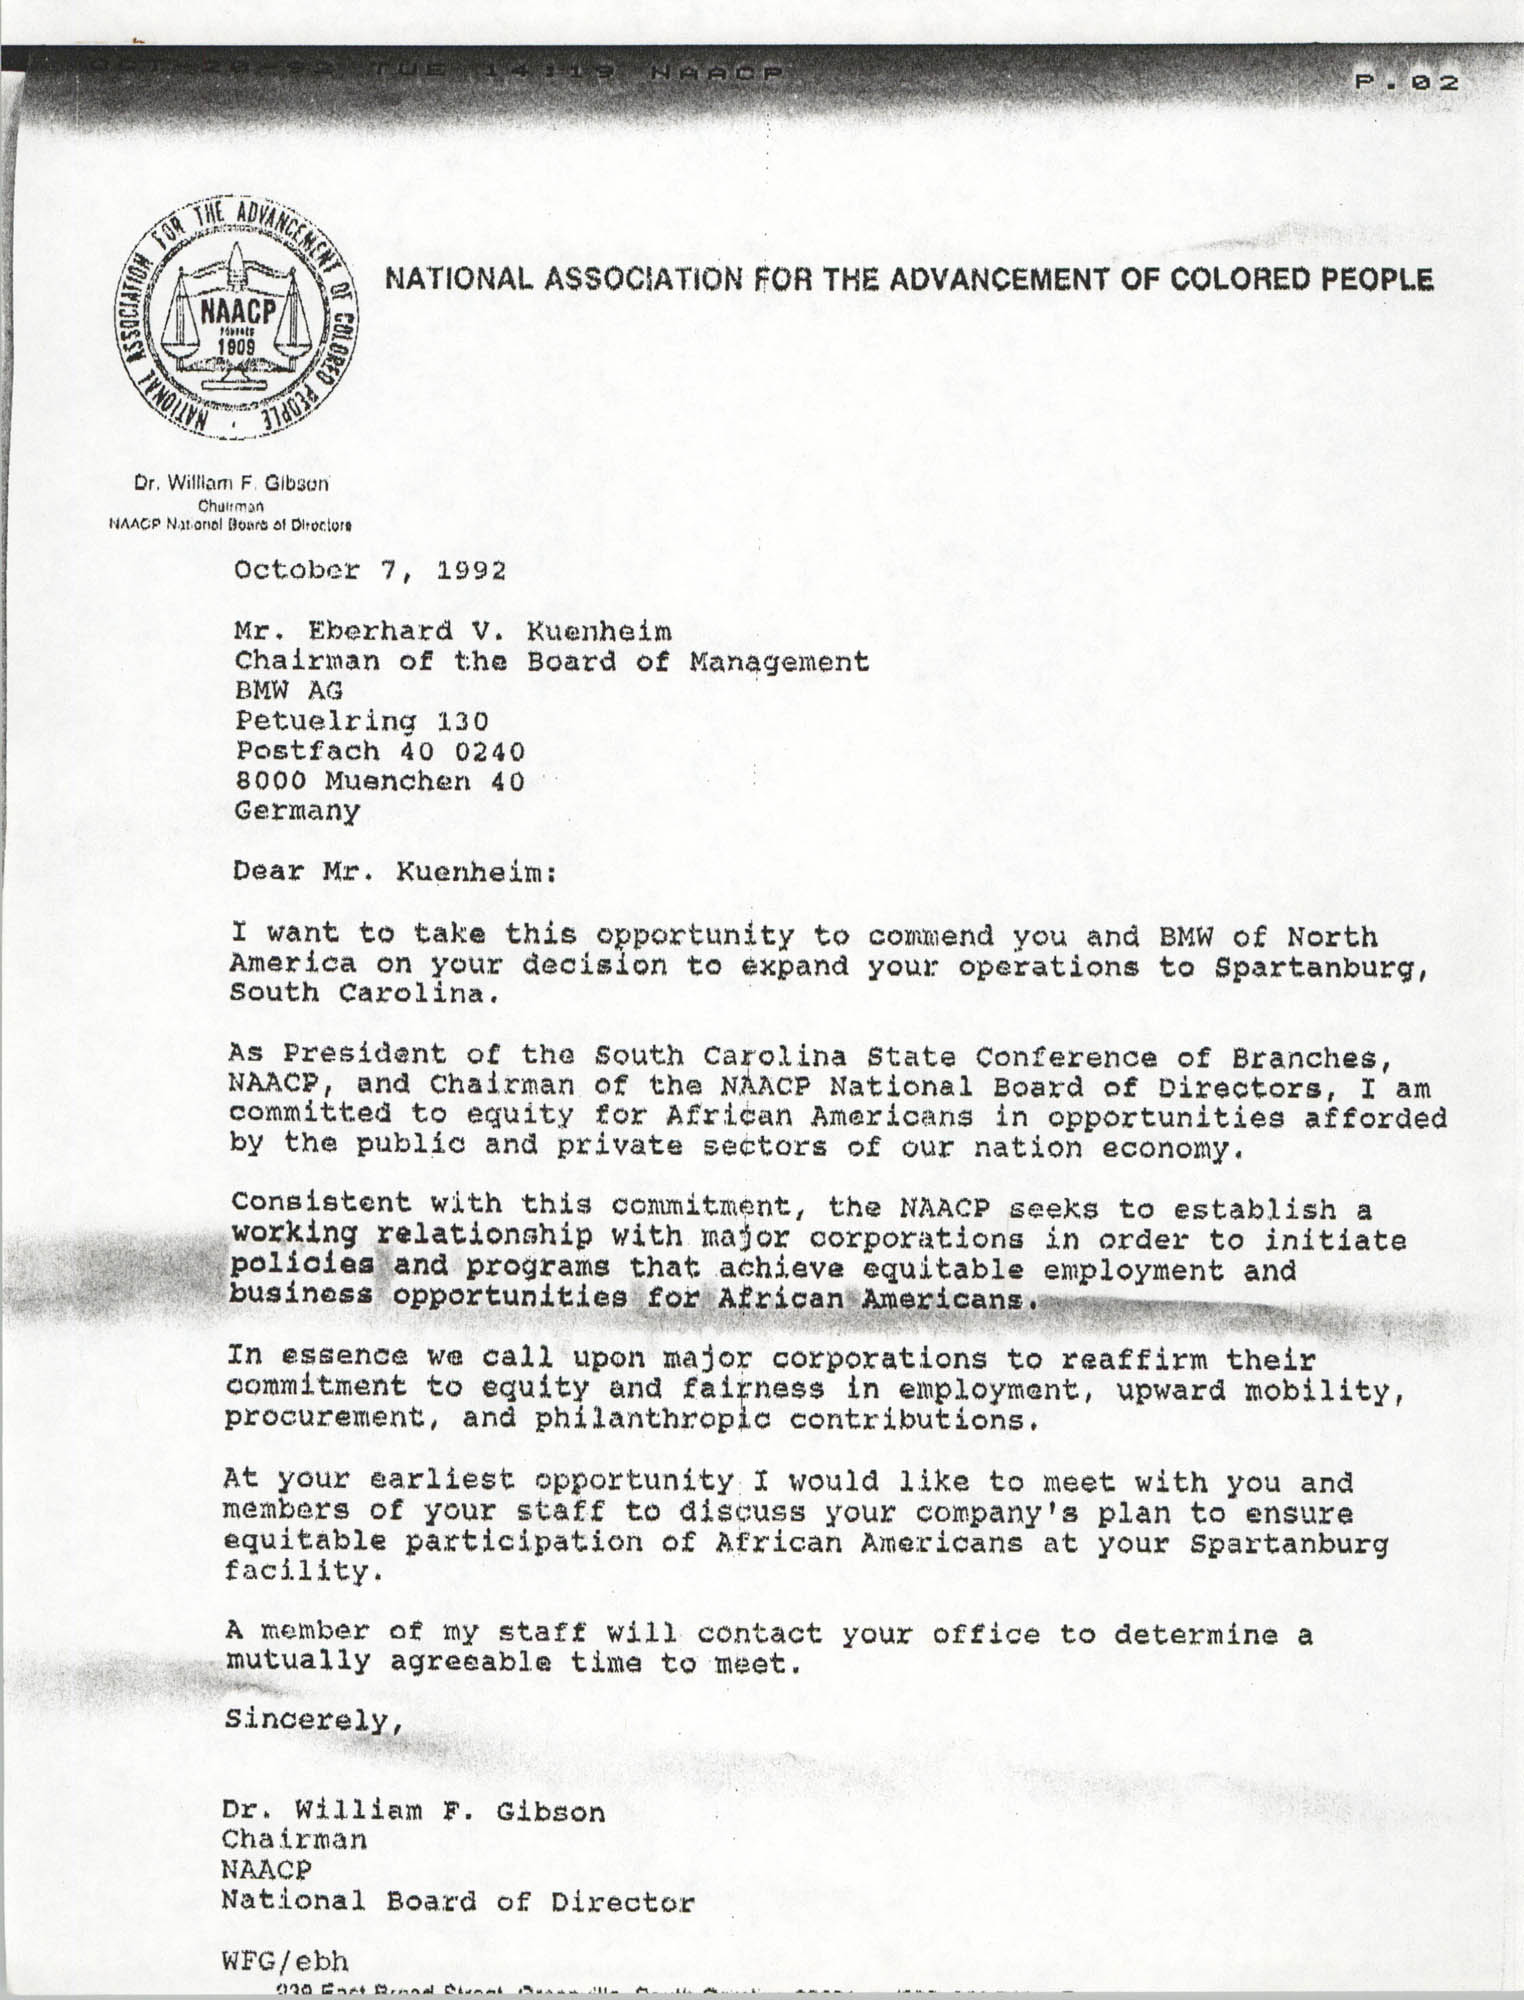 Letter from William F. Gibson to Eberhard V. Kuenheim, October 7, 1992